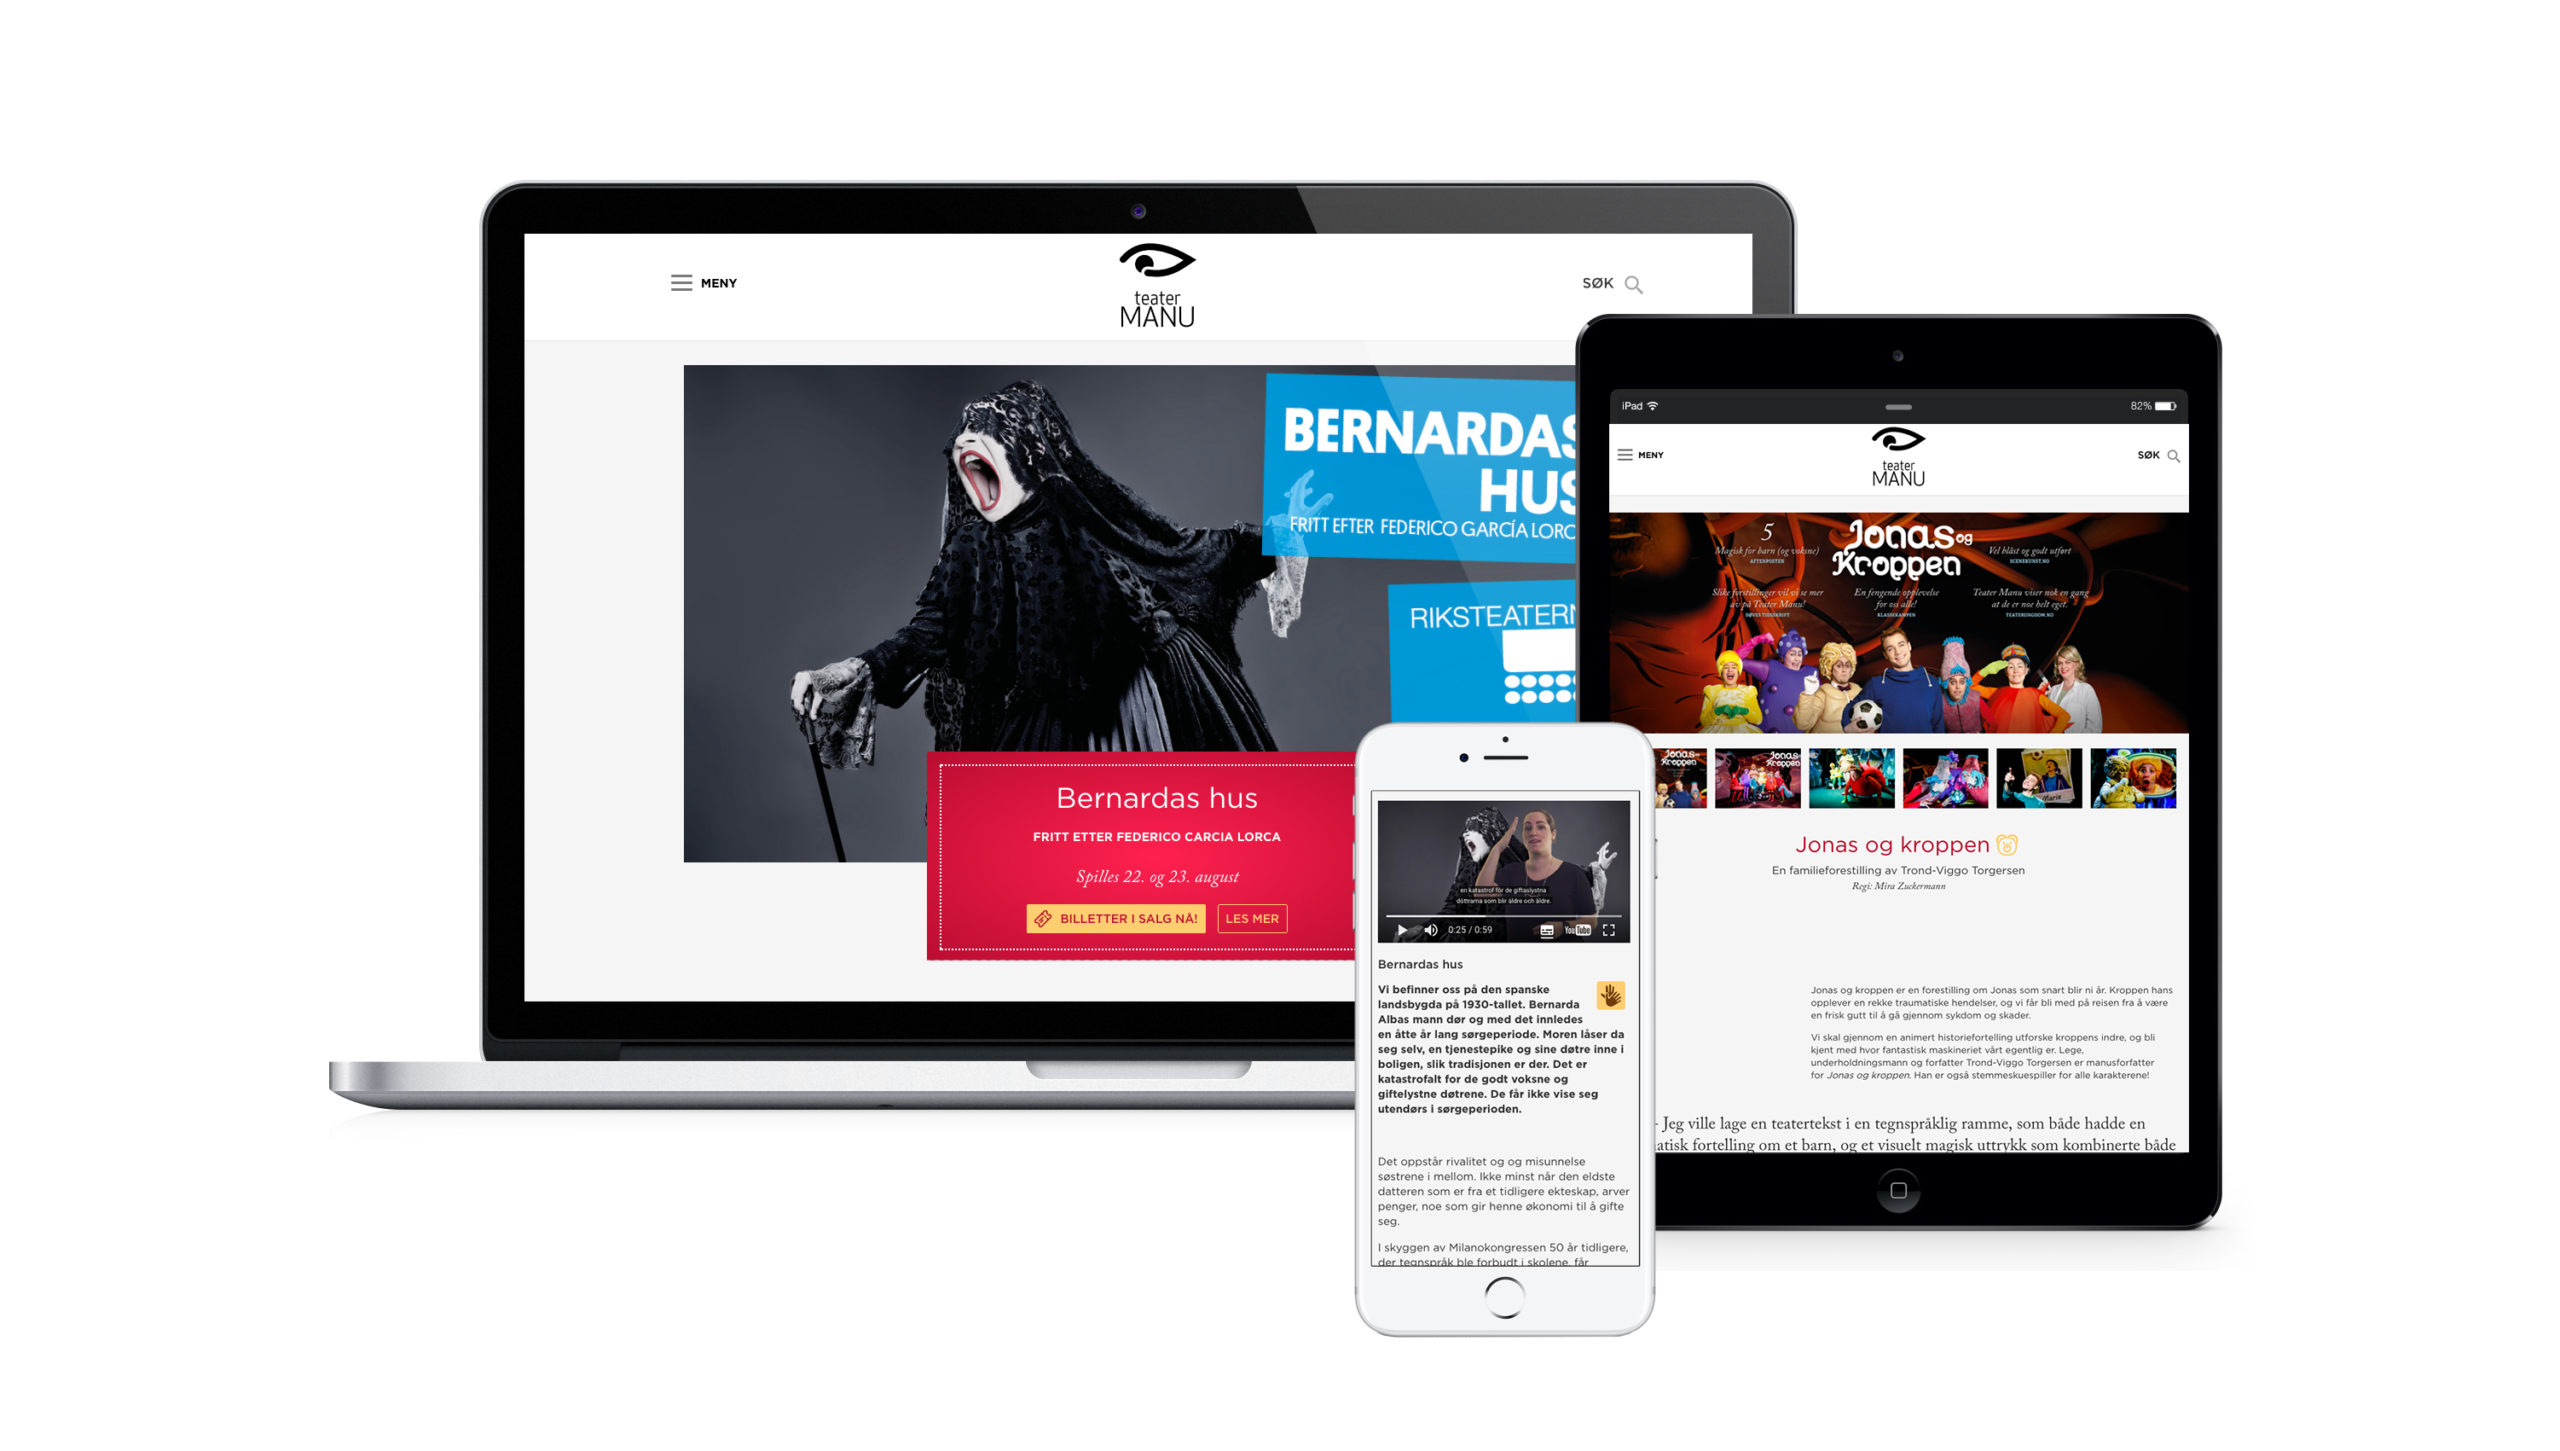 Screens from Teater Manu's website